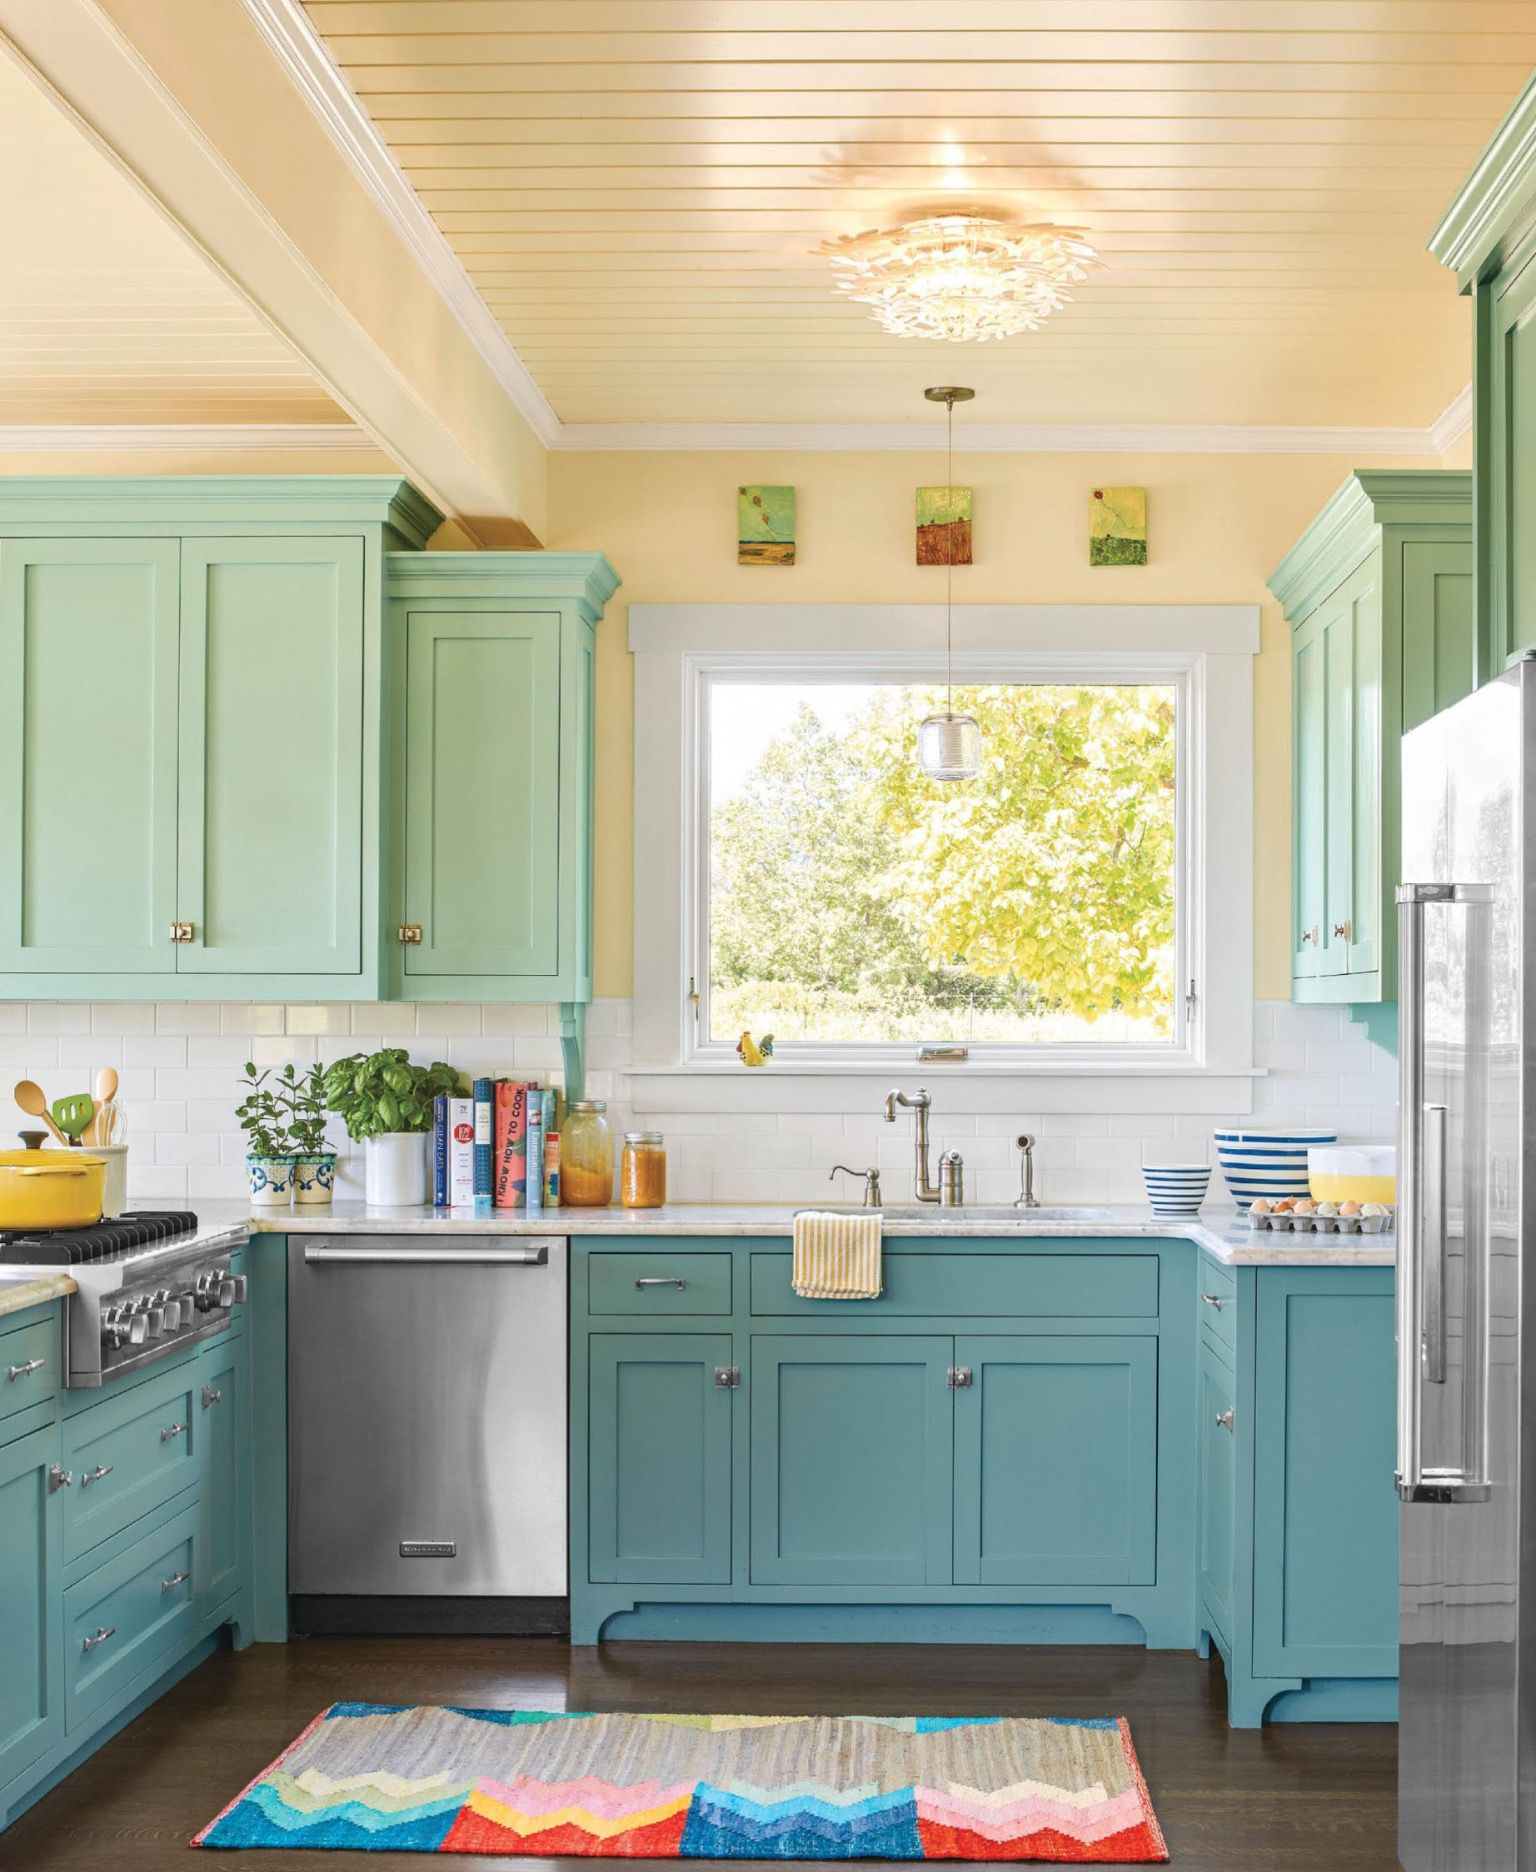 Country Kitchen Teal Green This Old House Funky Kitchen Kitchen Colors White Modern Kitchen